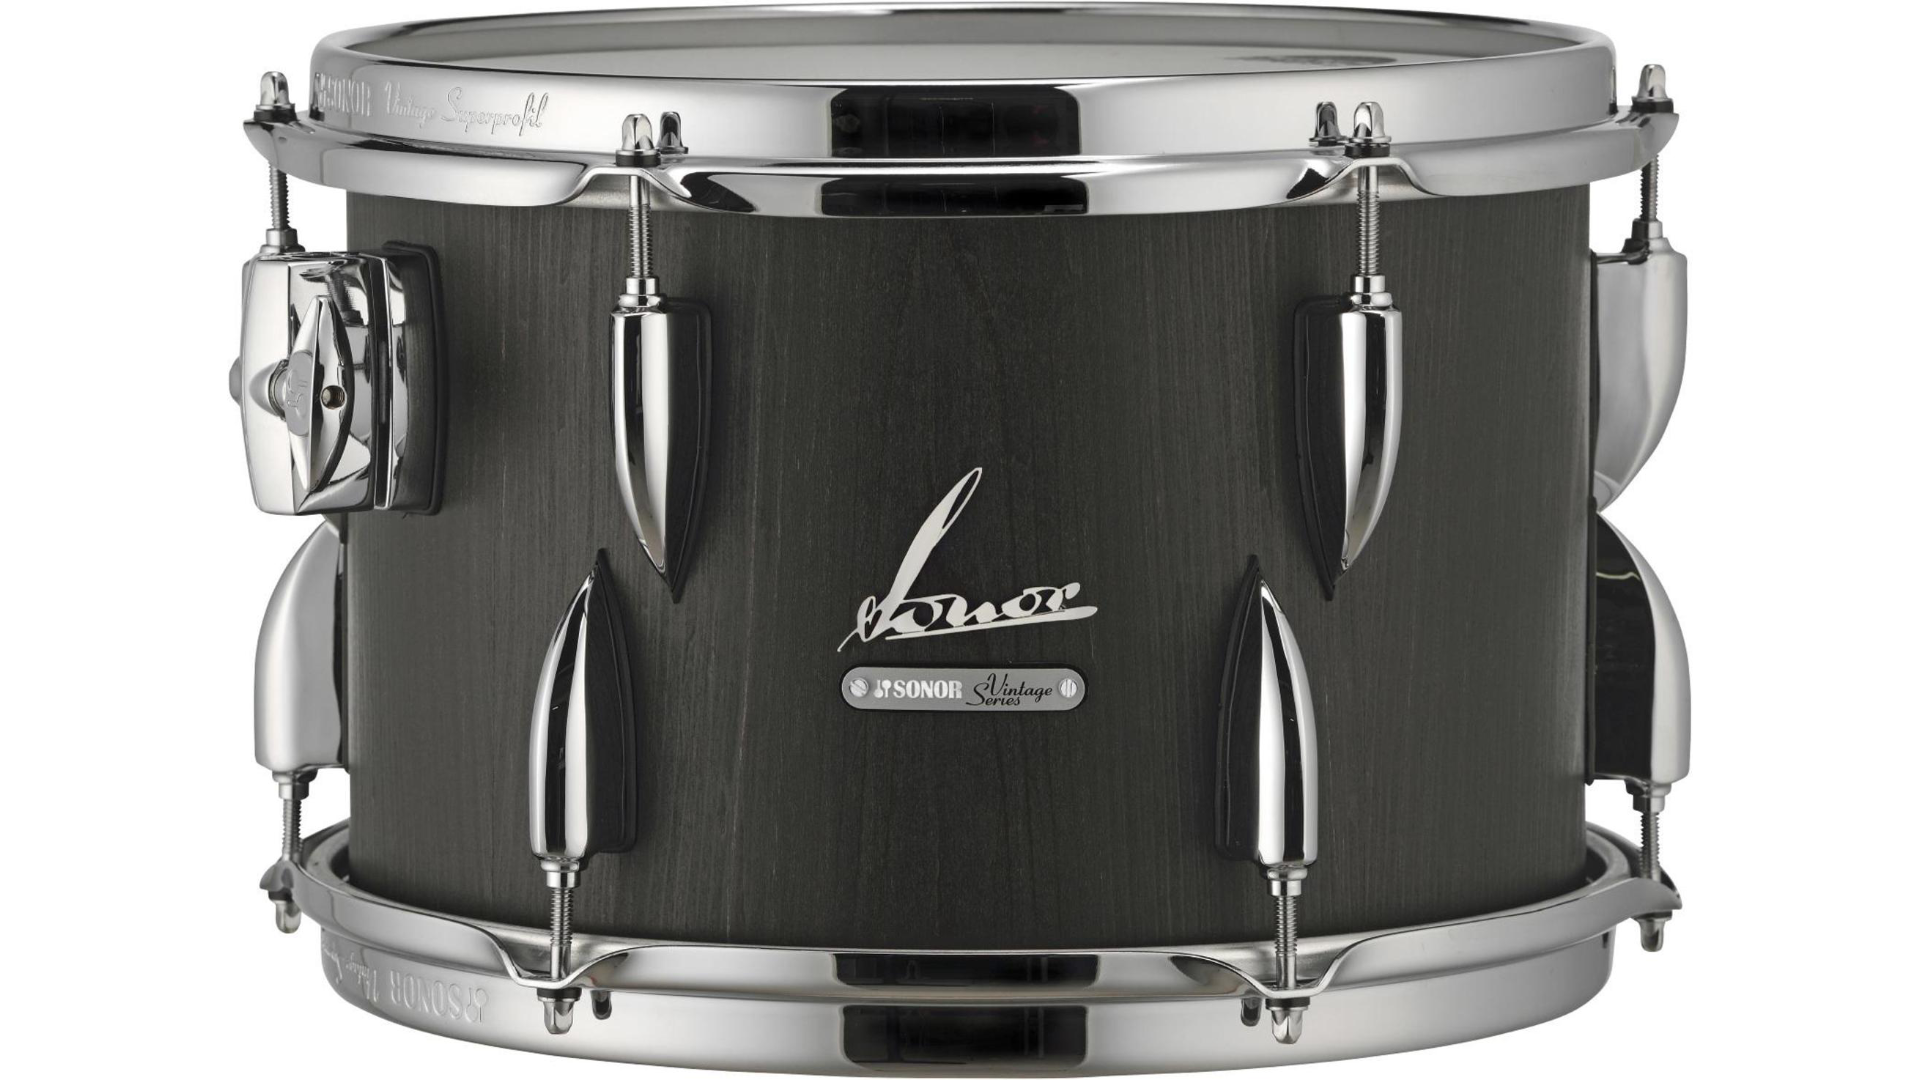 Sonor Vintage Series Tom  13 x 8 in. Vintage Onyx